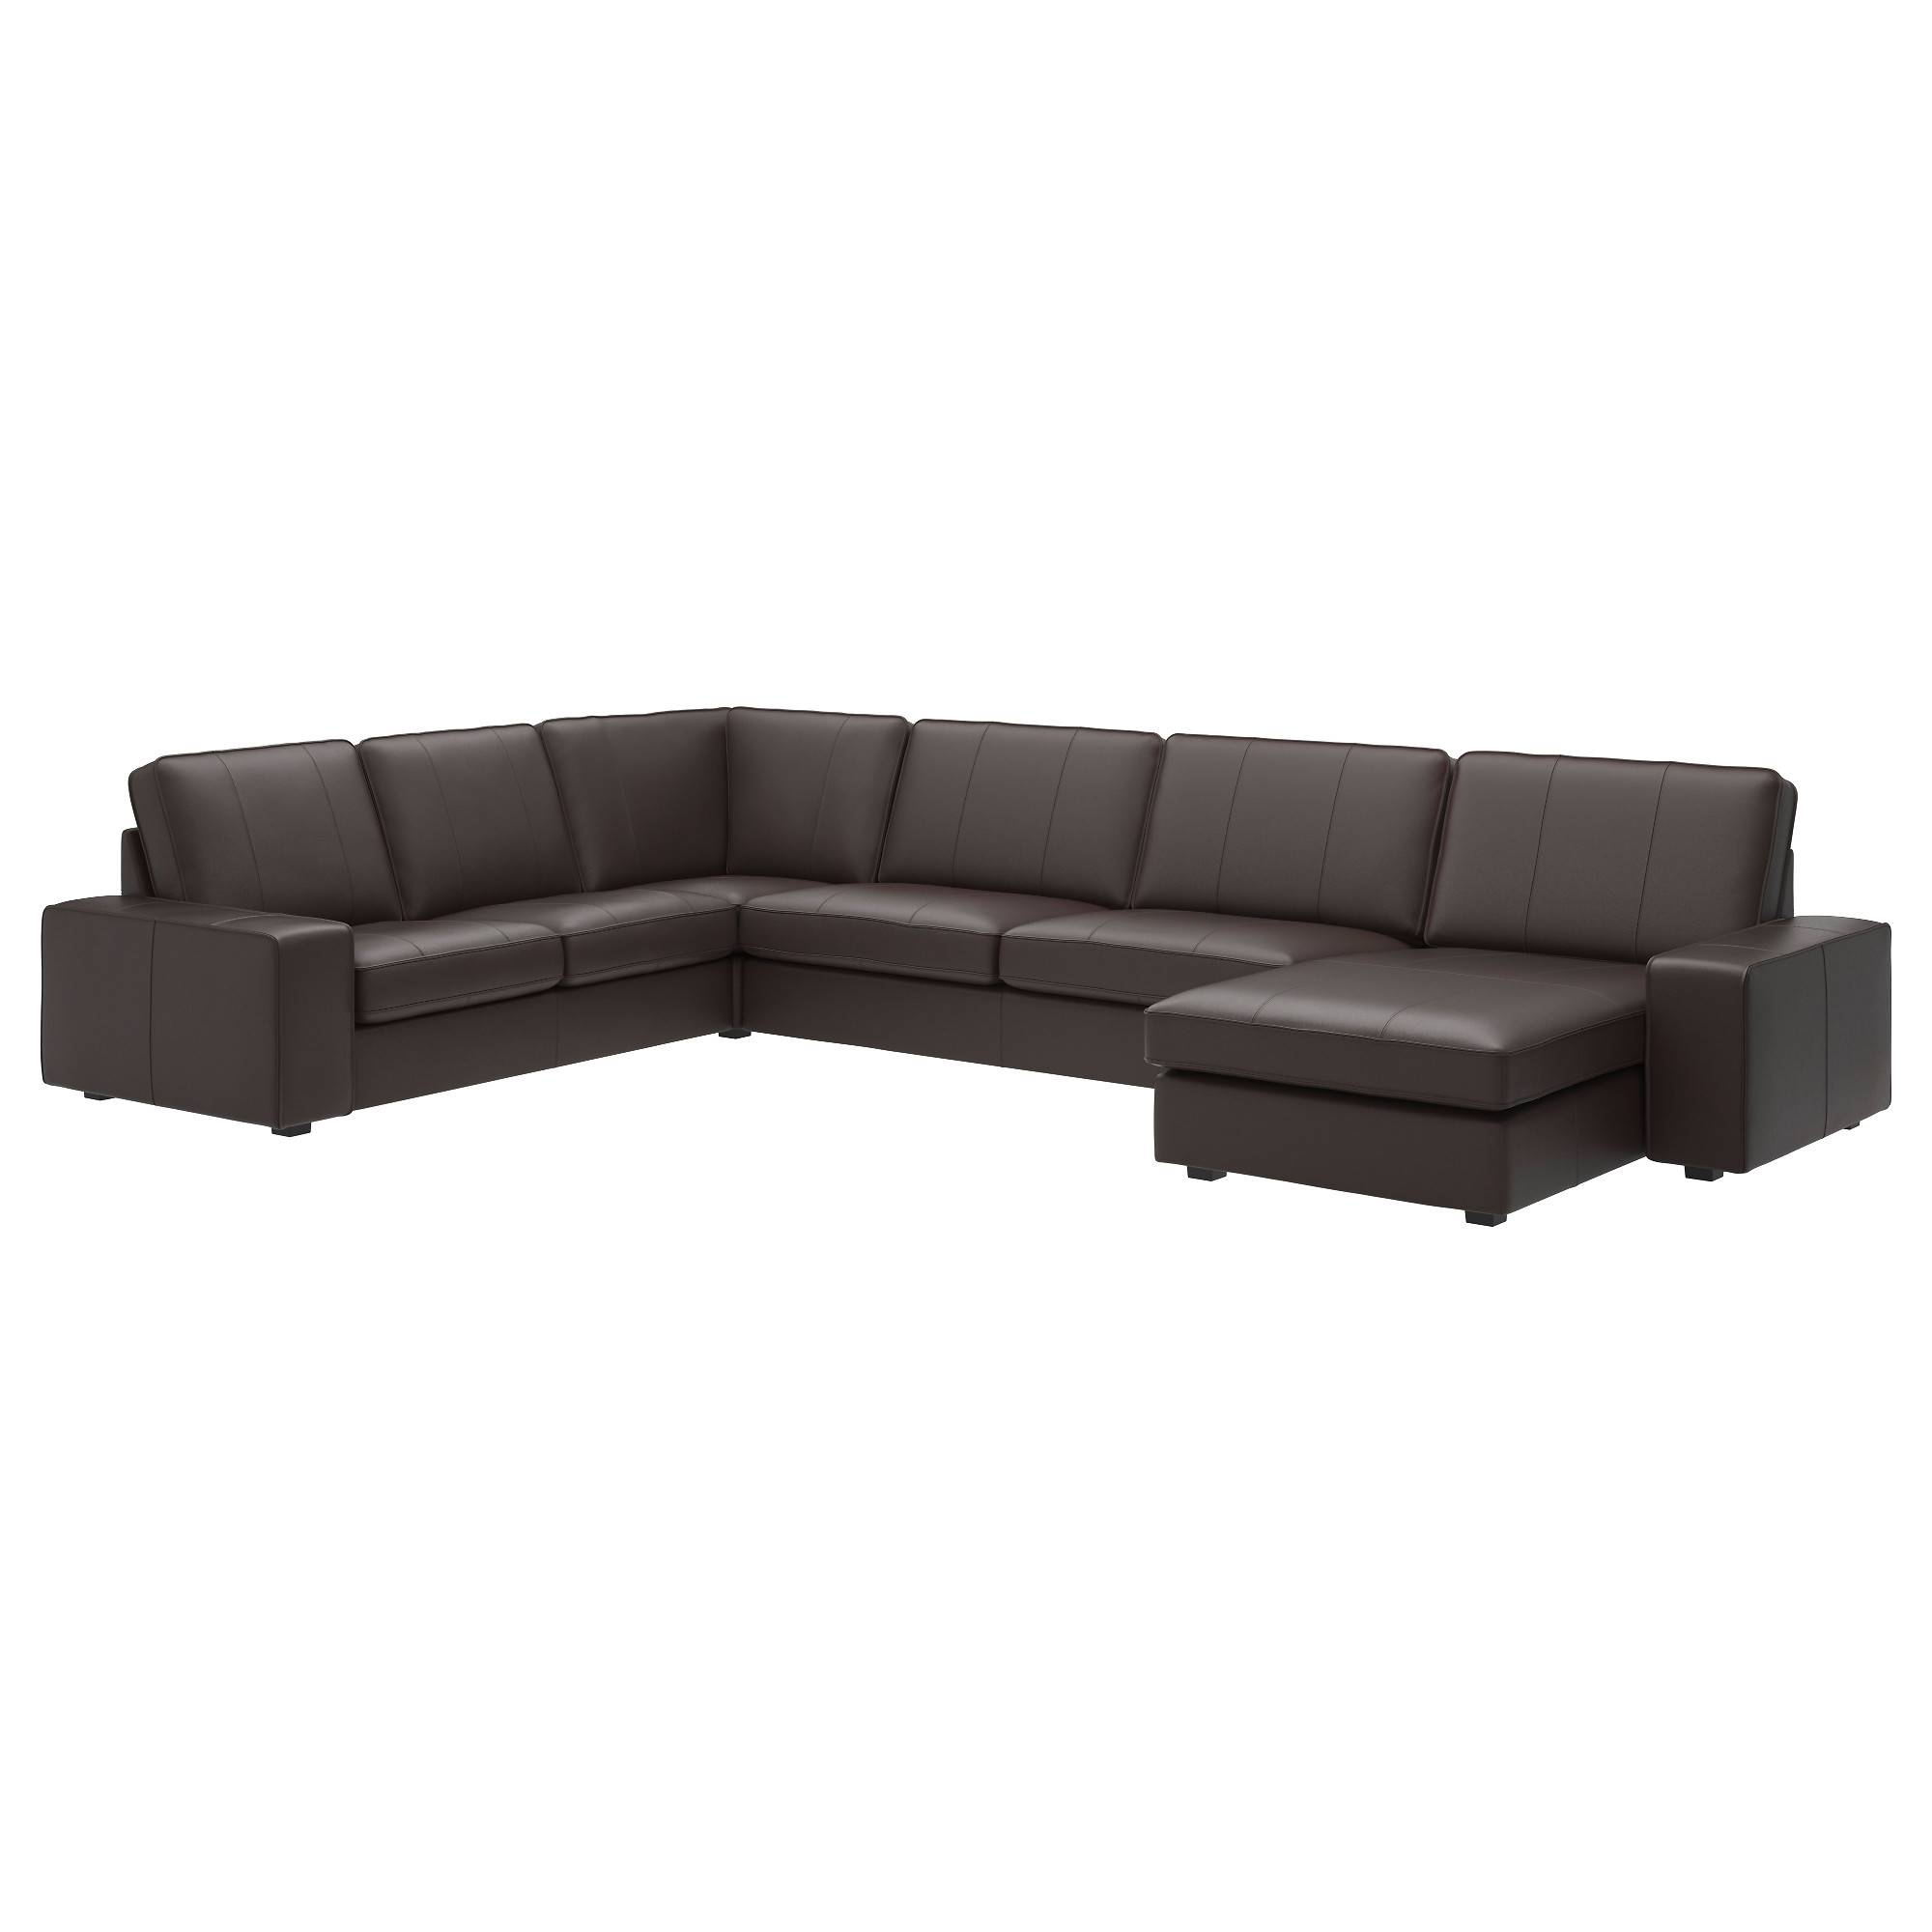 Sectional Sofas & Couches - Ikea with regard to Angled Chaise Sofa (Image 20 of 30)